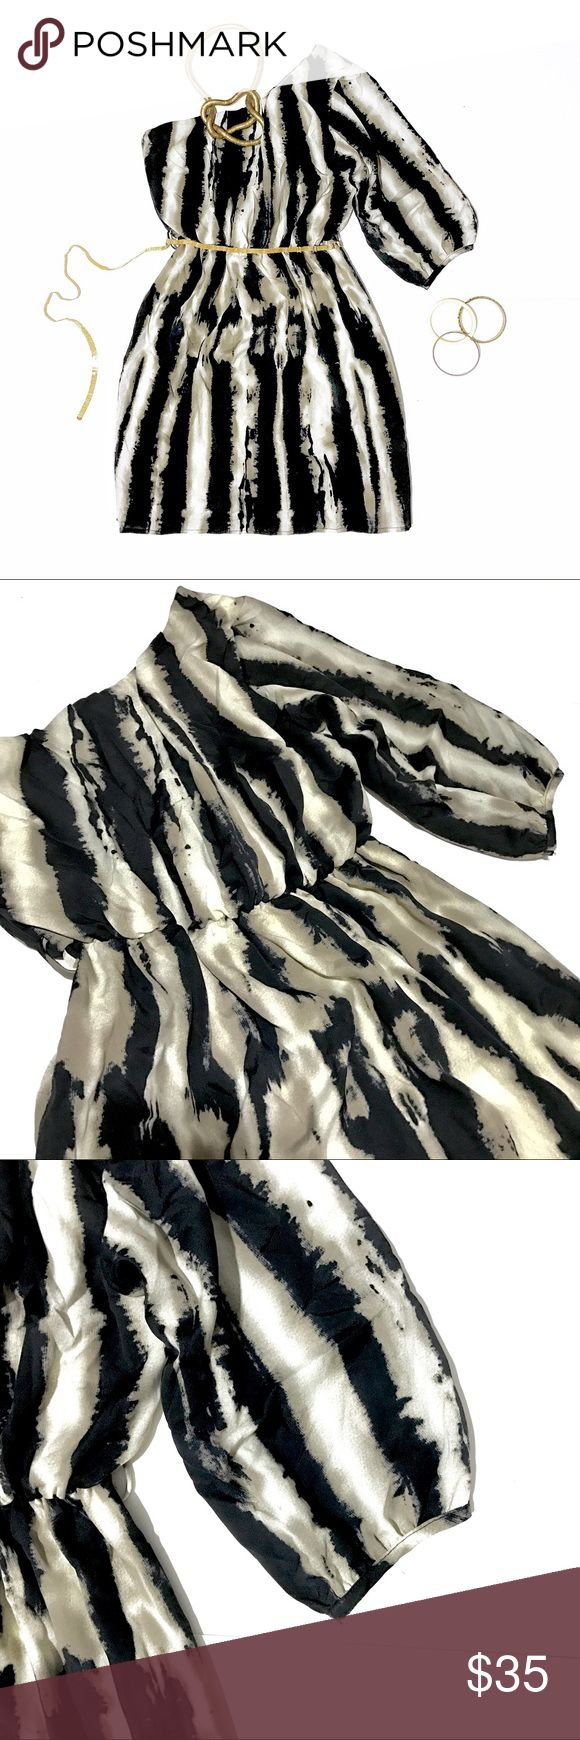 Poema One Shoulder Animal Print Mini Dress By Poema. Made in USA. One three-quarter sleeve shoulder mini dress with animal print. Lined with belt loops. Perfect condition; like new. Size small. Classic cocktail dress! Pair with heels and a belt with gold jewelry for a chic look⚡️. ♥️20% off bundles of 2+♥️ Poema Dresses One Shoulder